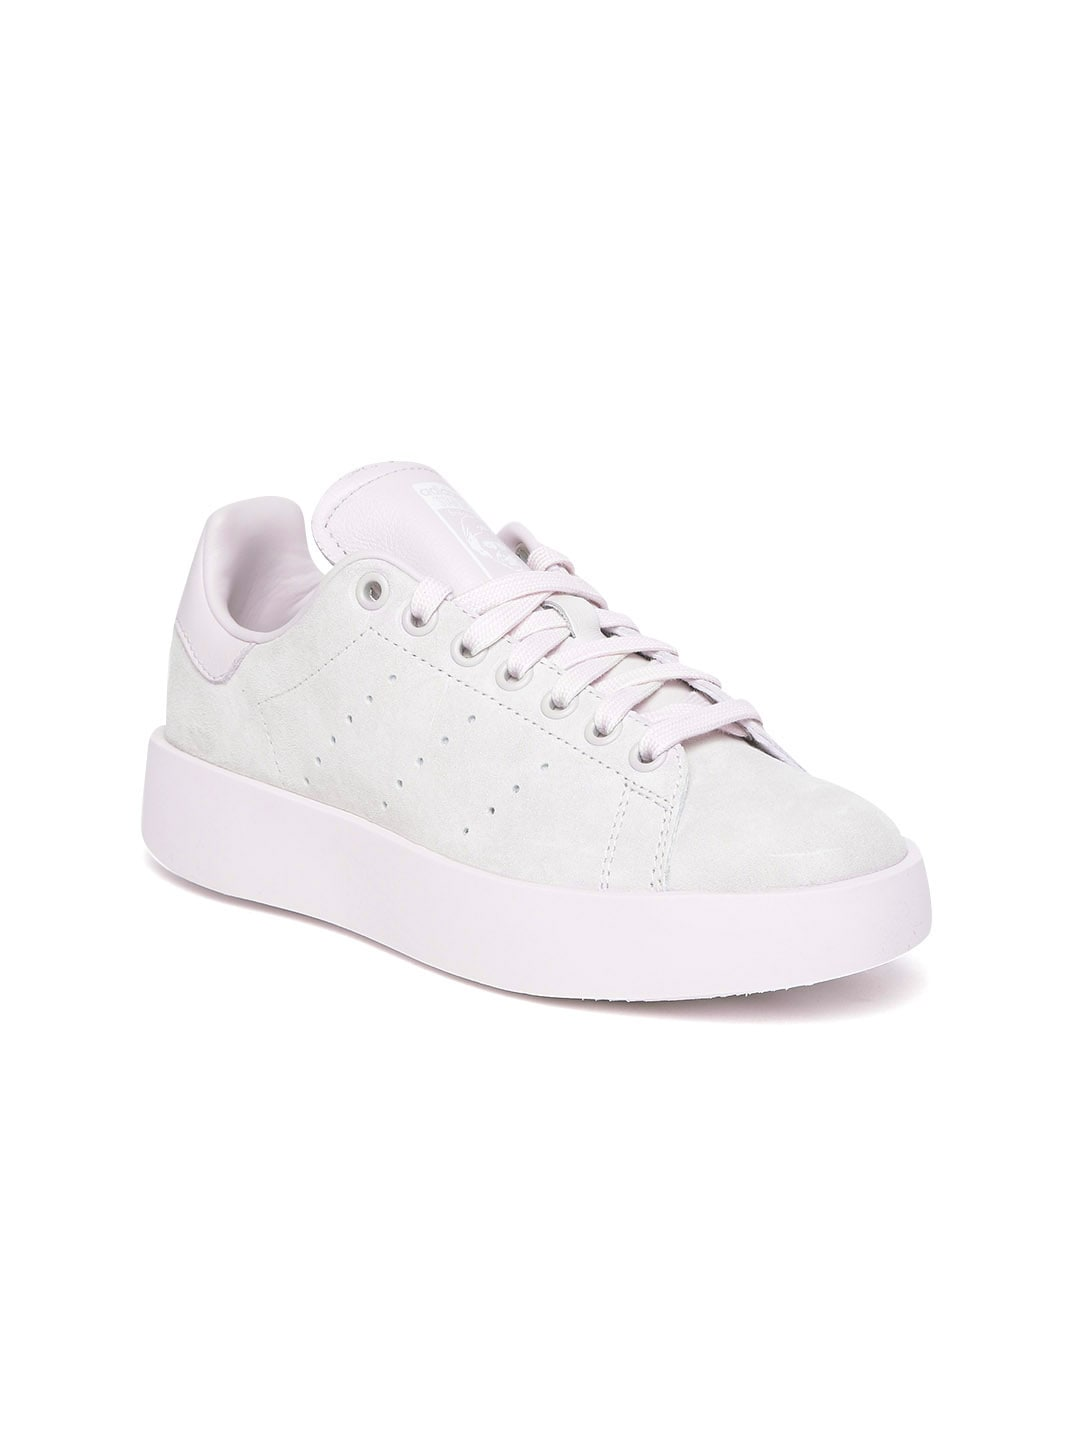 Adidas Stan Smith Sneakers - Buy Stan Smith Shoes and Sneakers Online in  India - Myntra f74b0a783f